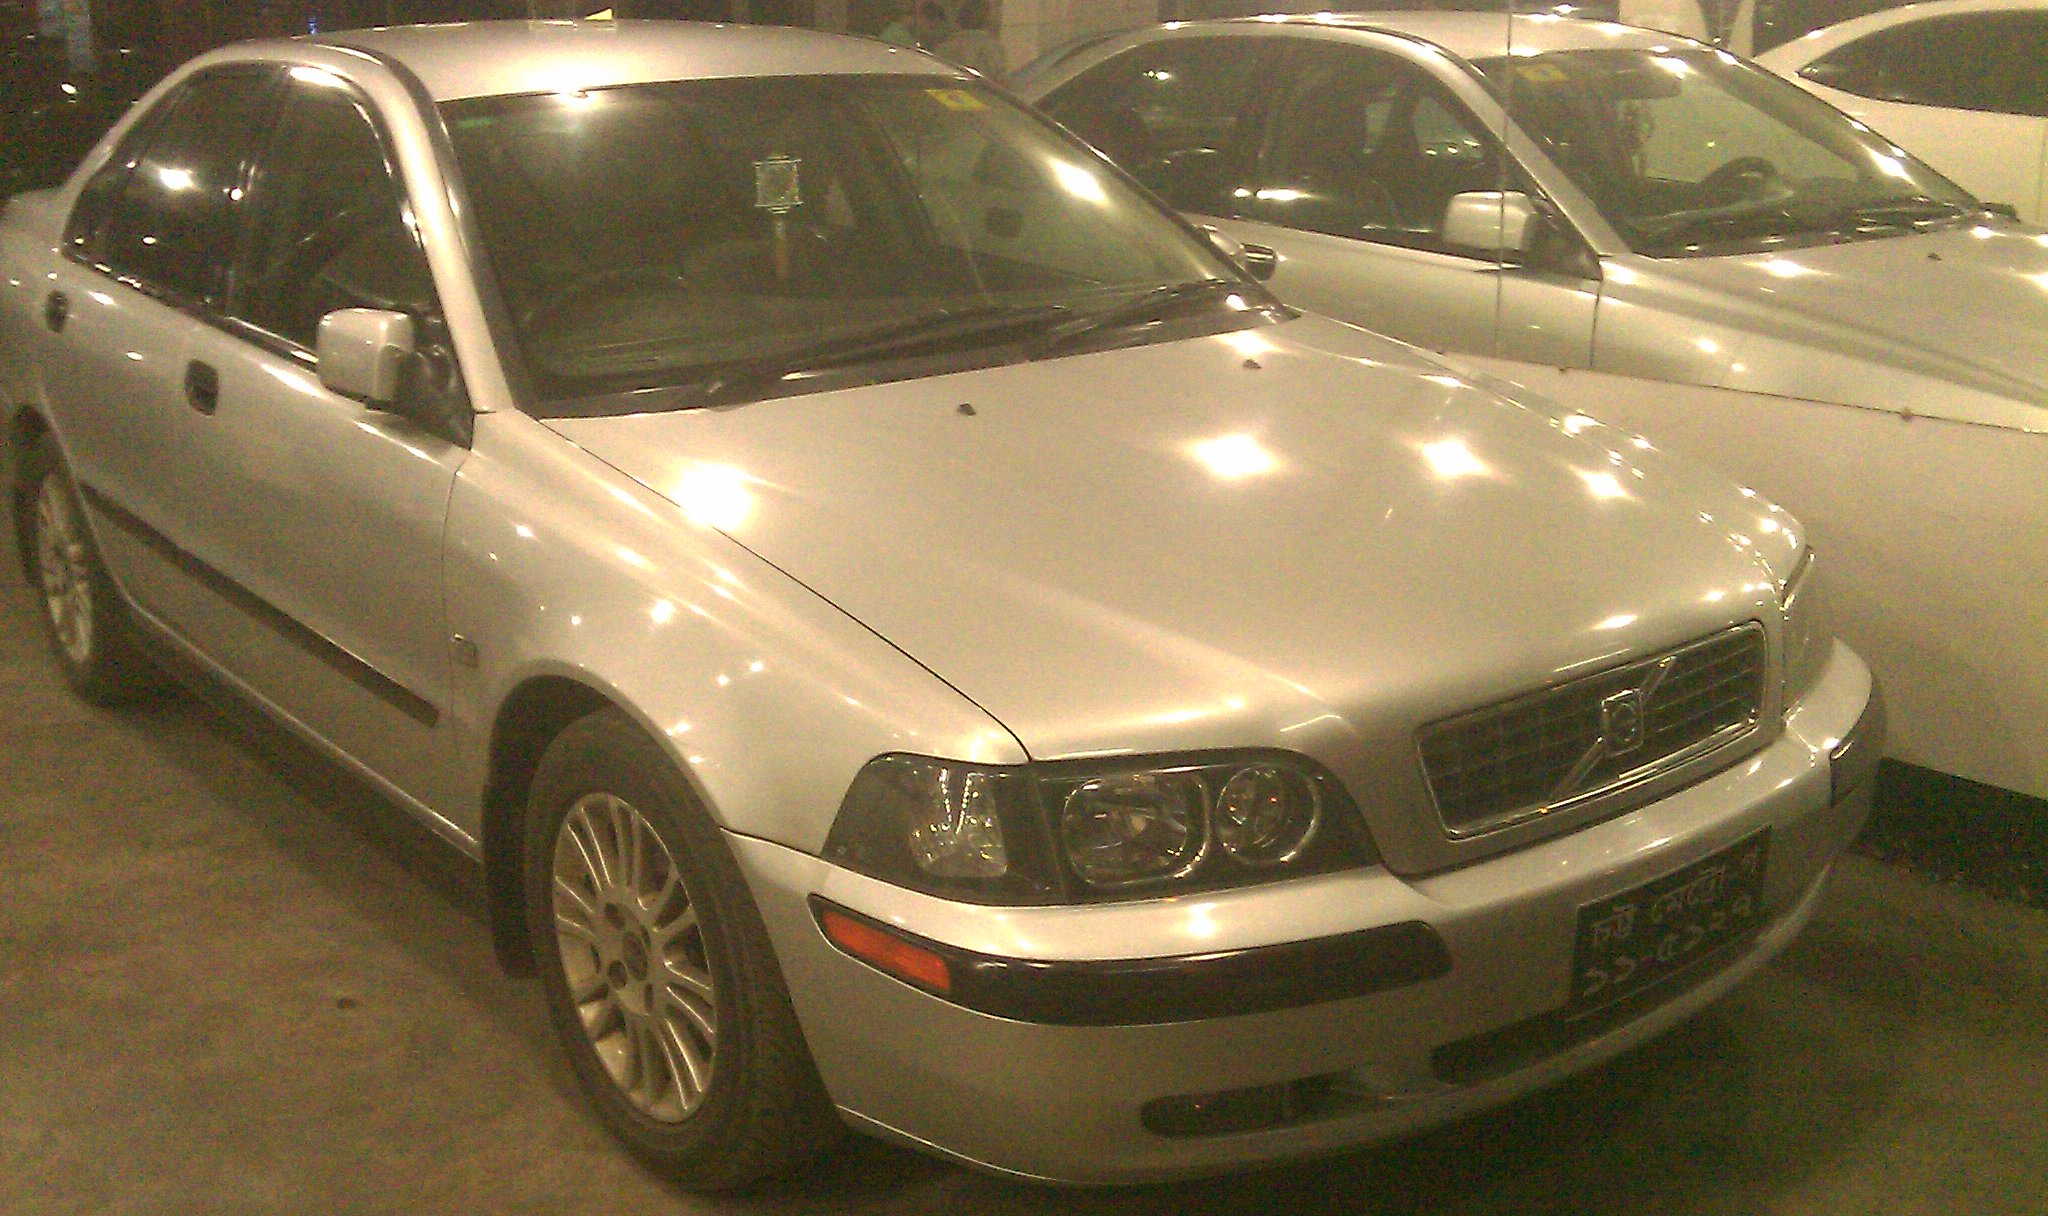 Volvo S40 All power MT 2000 Model 2004 regi | ClickBD large image 0